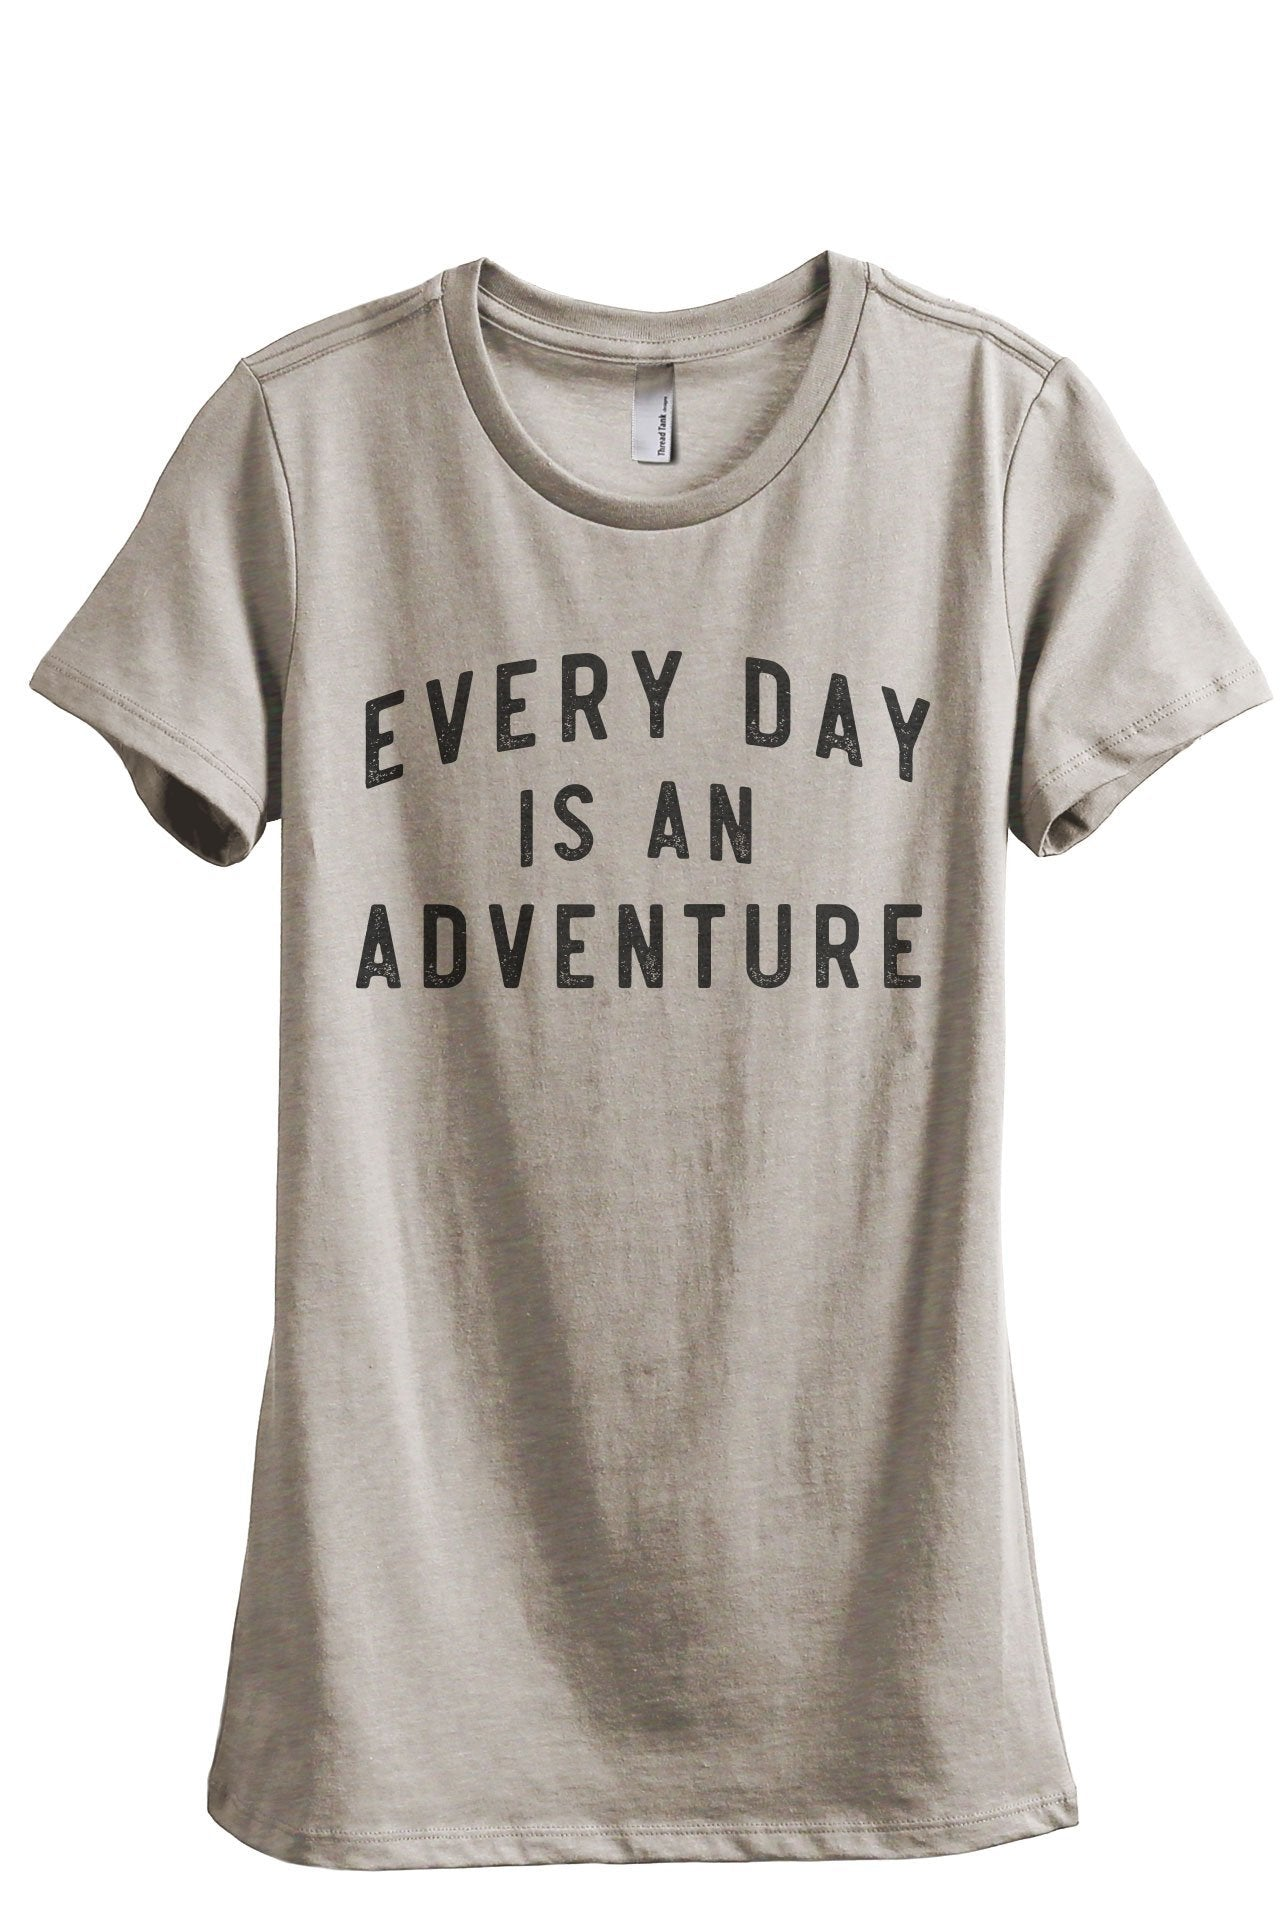 Everyday Is An Adventure Women's Relaxed Crewneck T-Shirt Top Tee Heather Tan